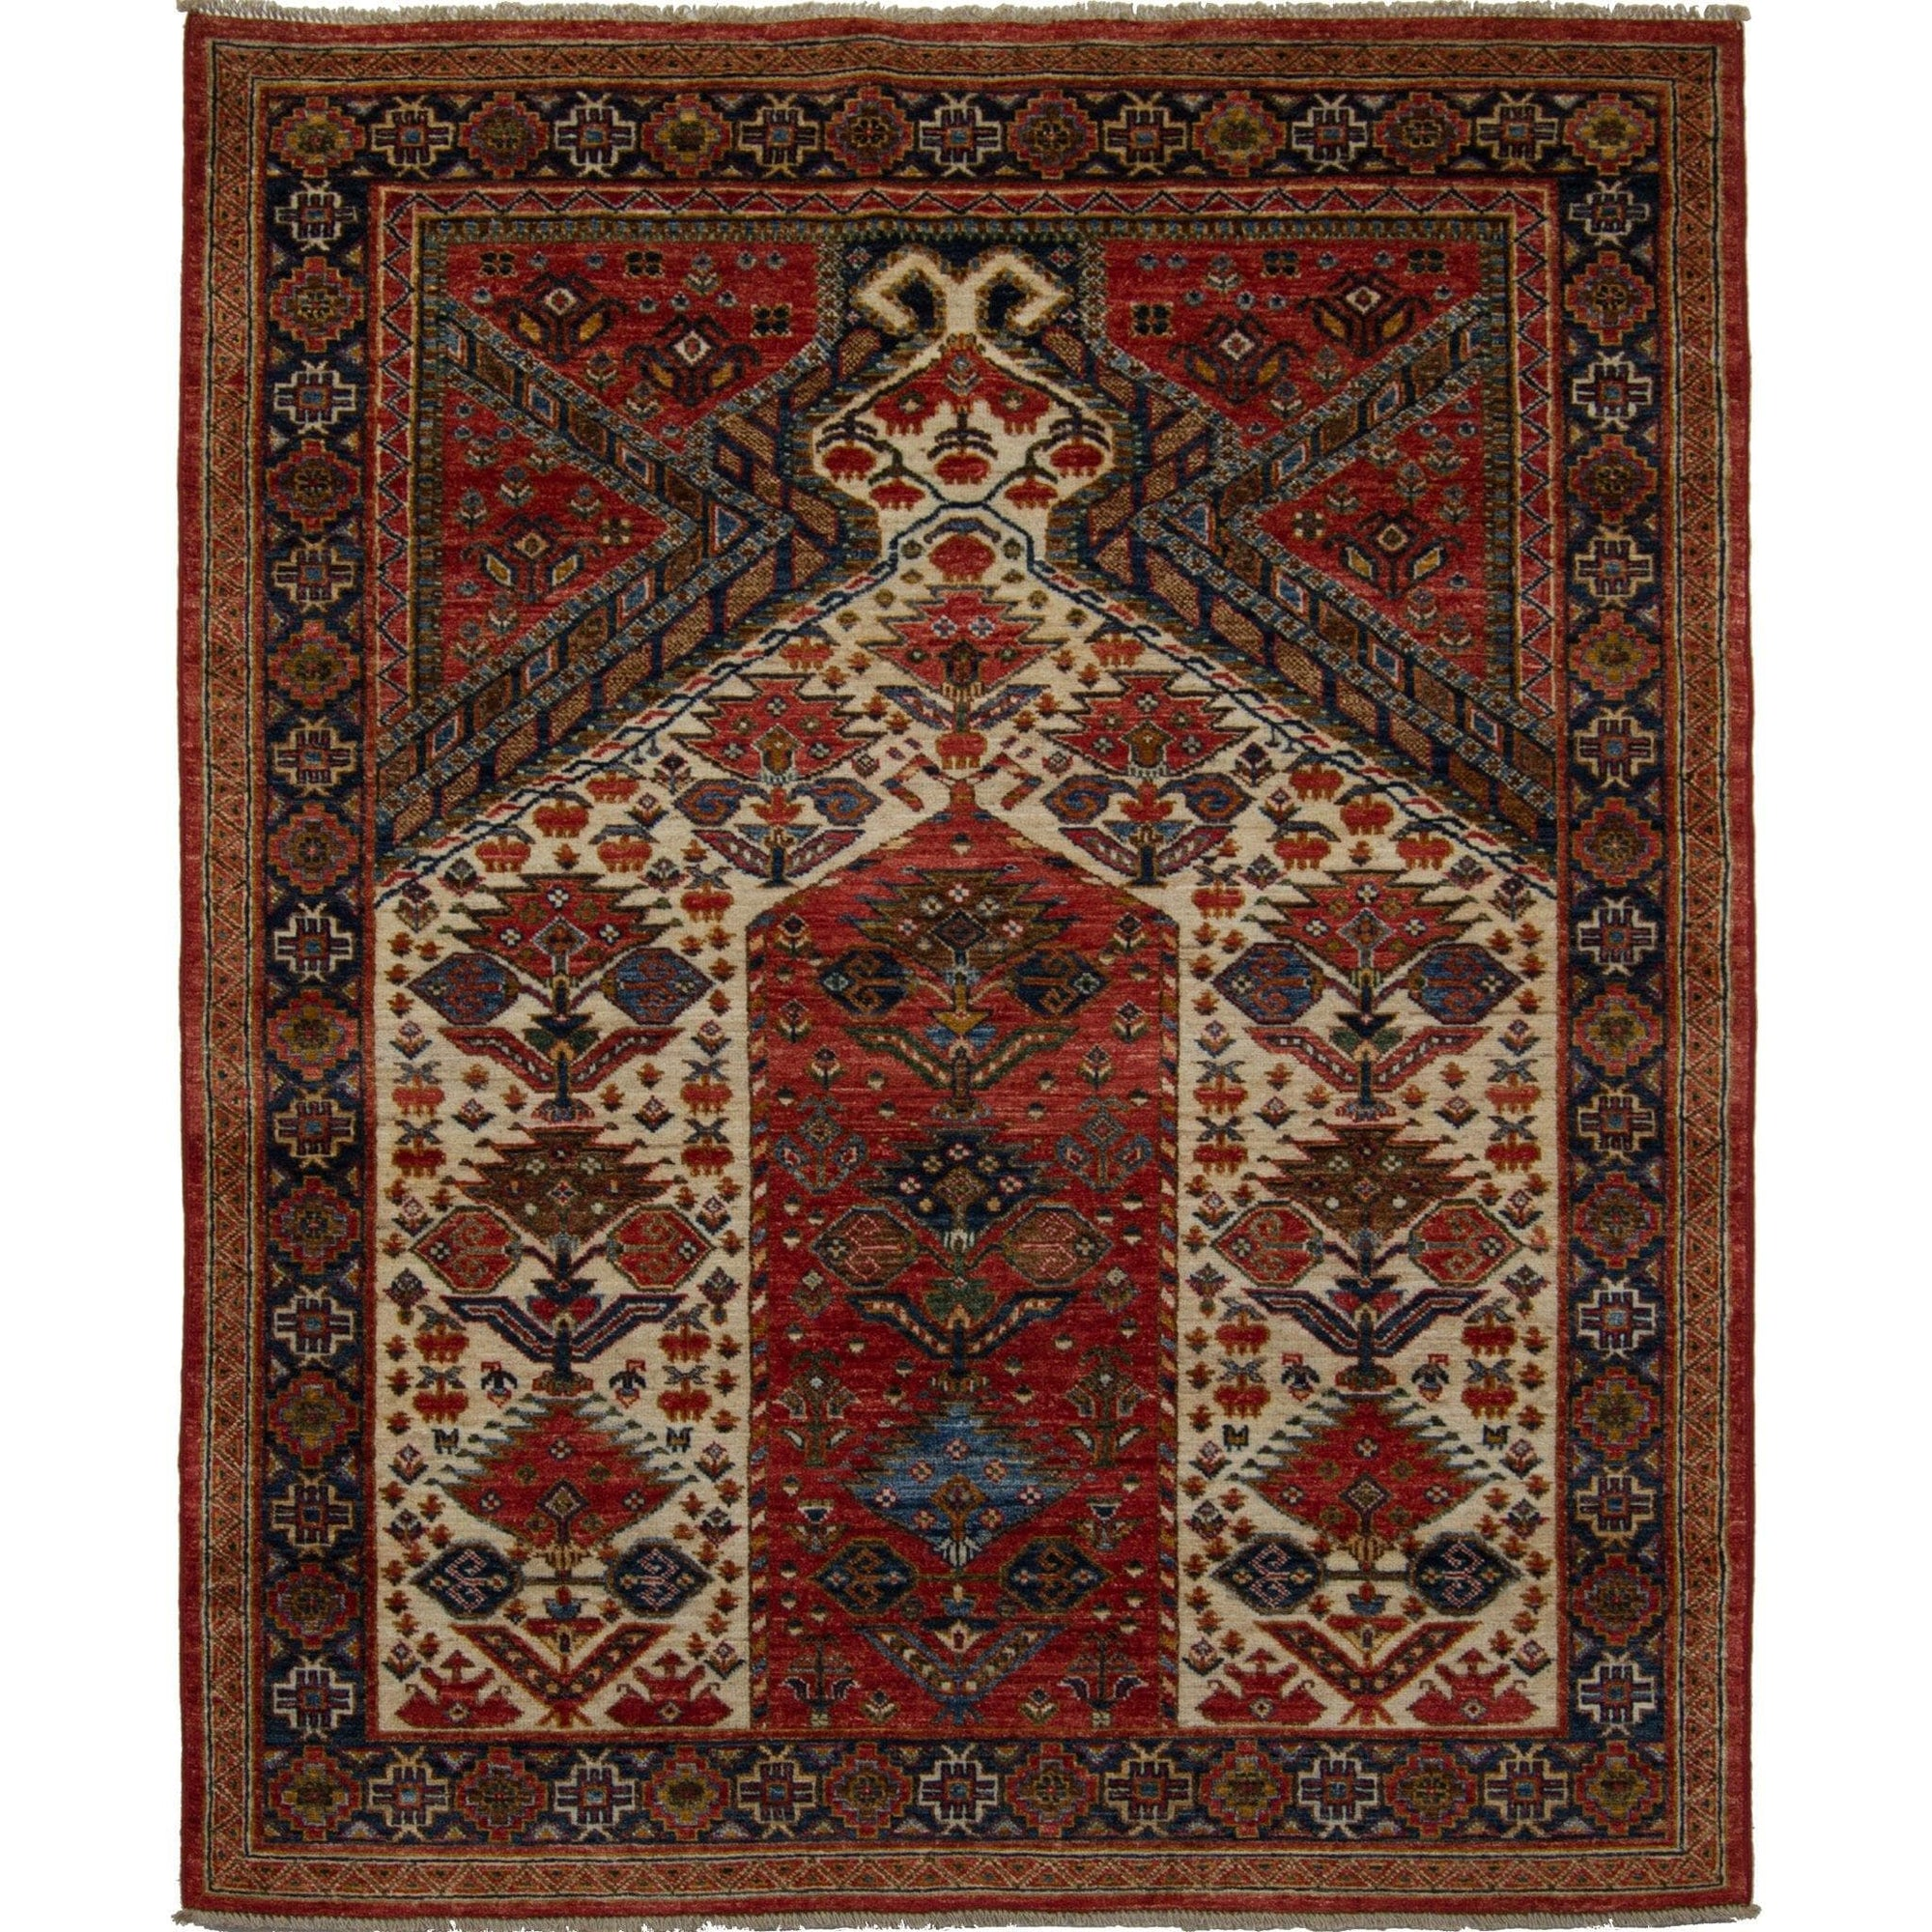 Fine Hand-knotted Tribal Wool Rug 150cm x 205cm Persian-Rug | House-of-Haghi | NewMarket | Auckland | NZ | Handmade Persian Rugs | Hand Knotted Persian Rugs